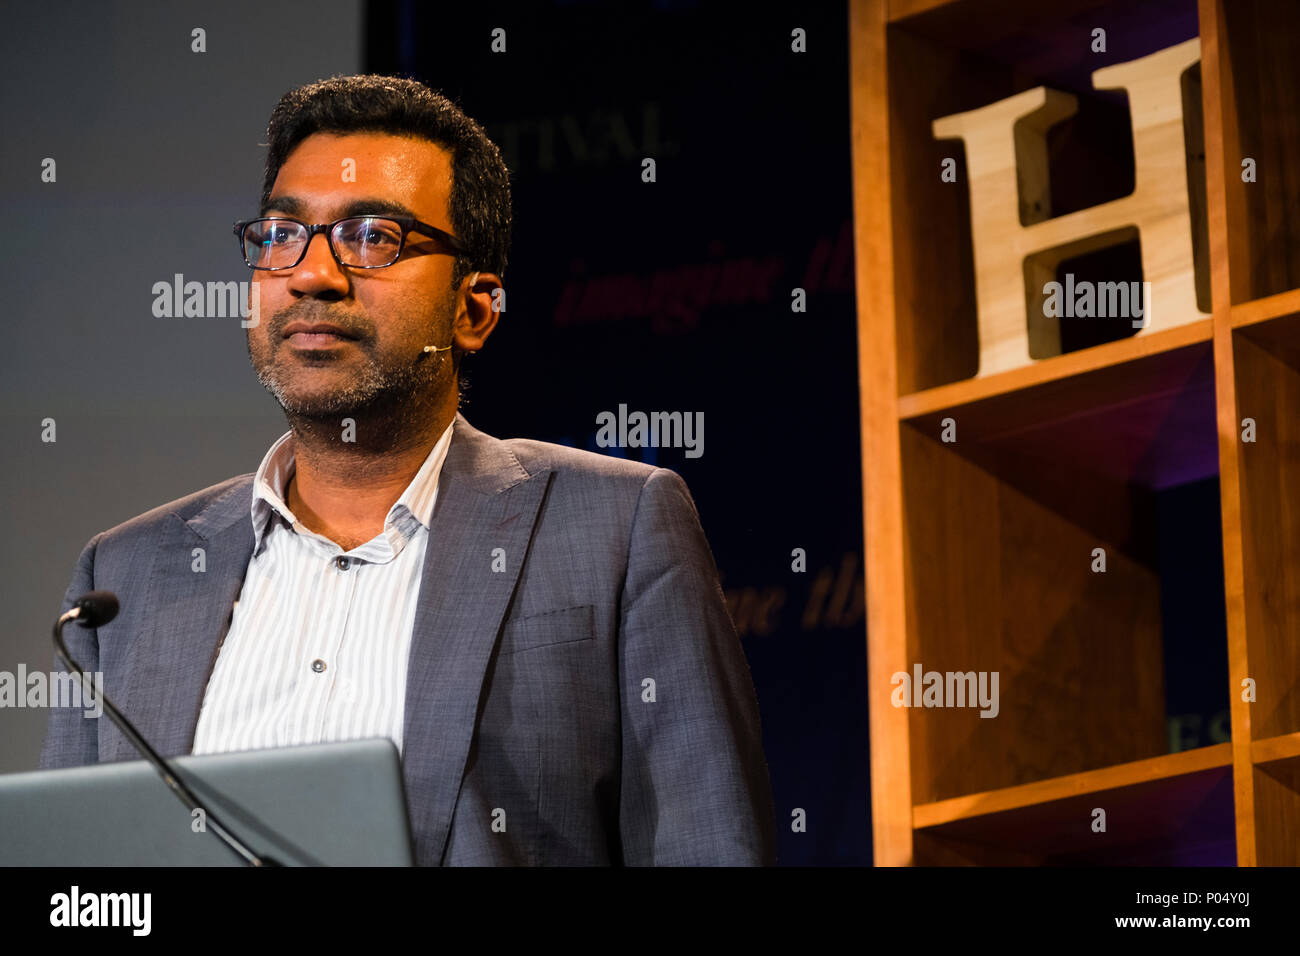 "Dr Sujit Sivasundaram , Reader in World History at Cambridge University,  fellow of Gonville and Caius College, Cambridge. He is the author of ""Nature and the Godly Empire: Science and Evangelical Mission in the Pacific, 1795-1850"".  At the Hay Festival  of Literature and the Arts, May 2018 Stock Photo"